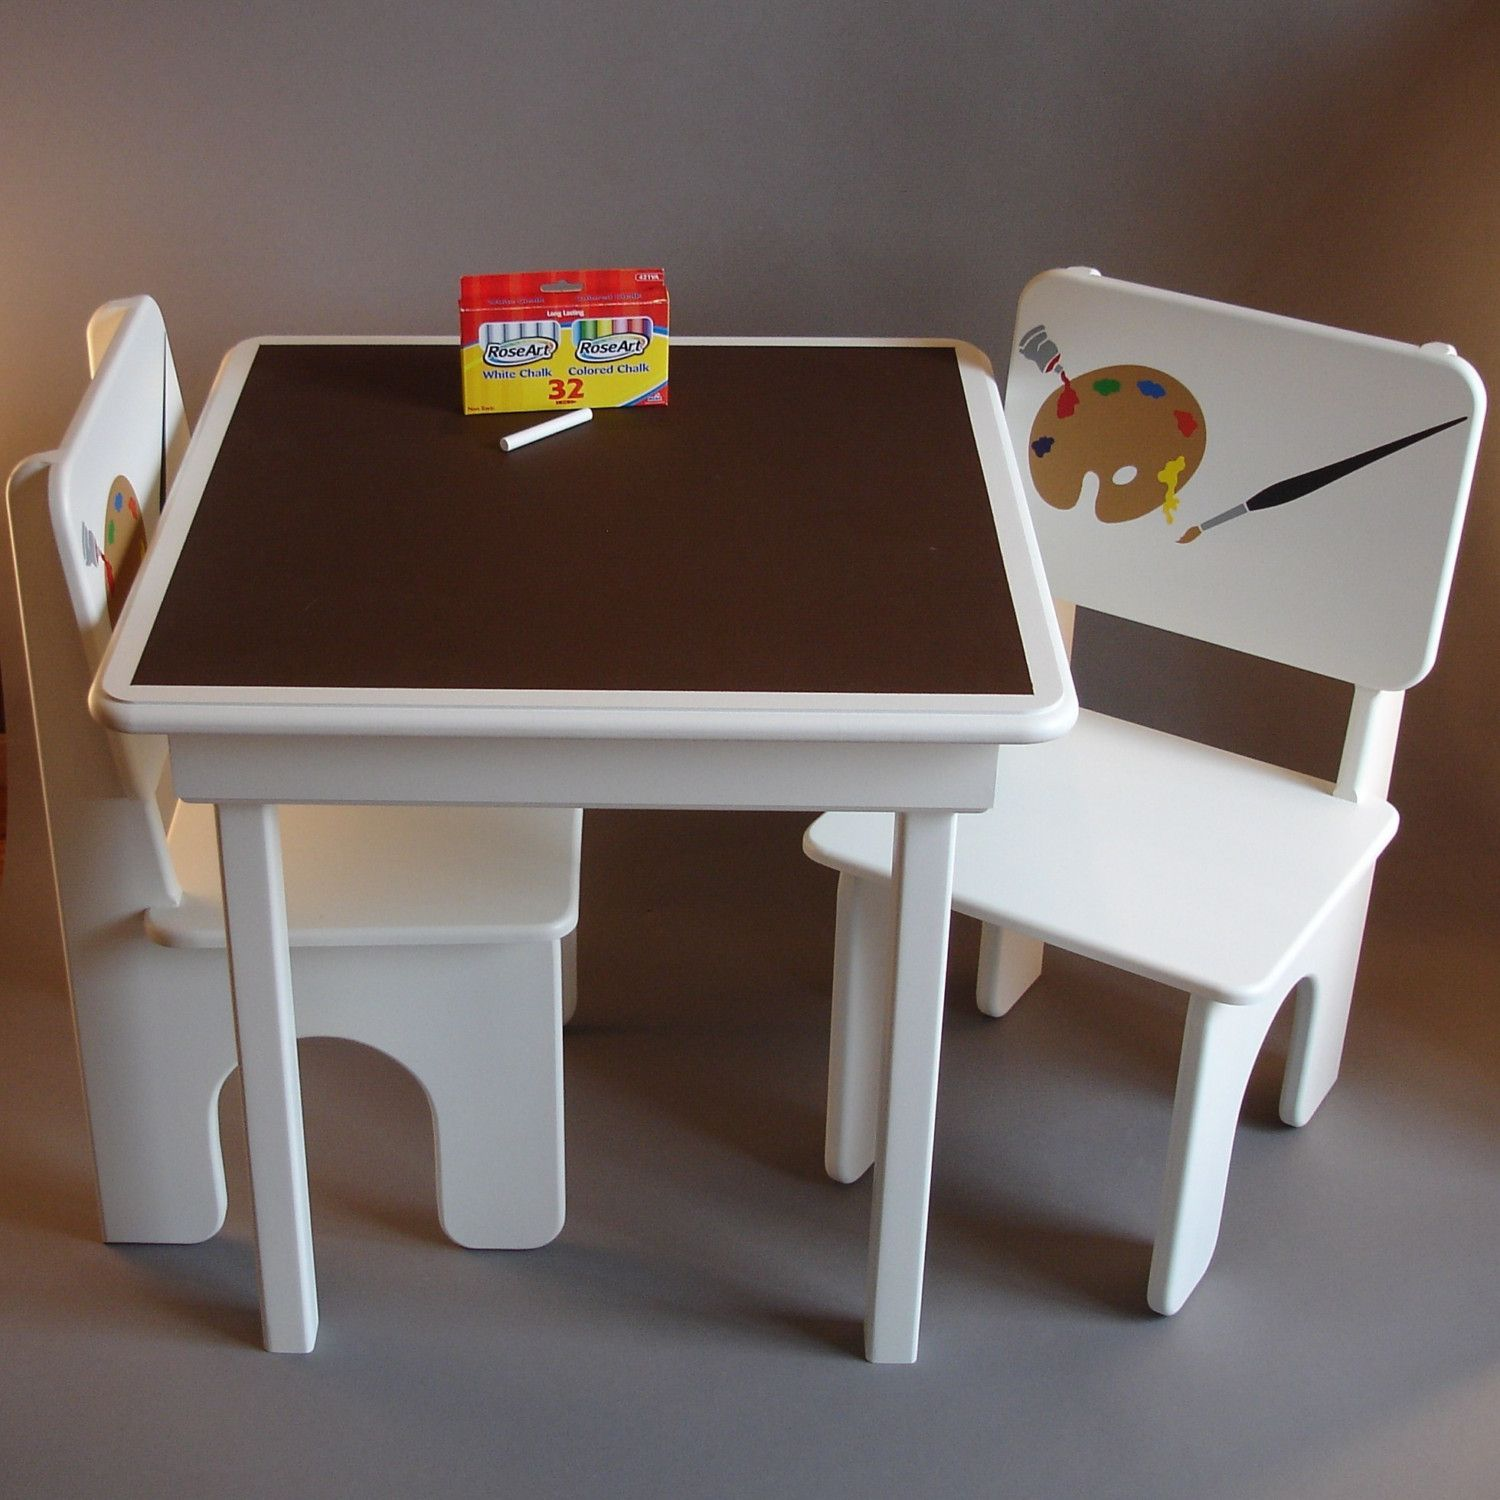 Chalkboard Table and Chairs for Little Artists in Coffee and Cream